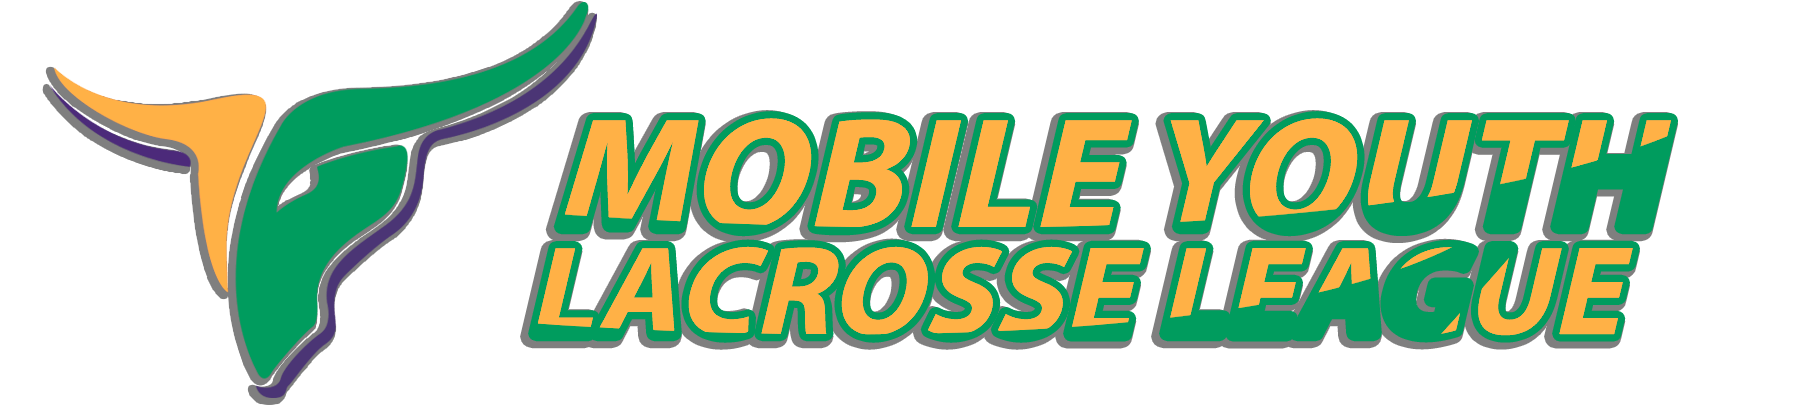 Mobile Youth Lacrosse League, Lacrosse, Goal, Field